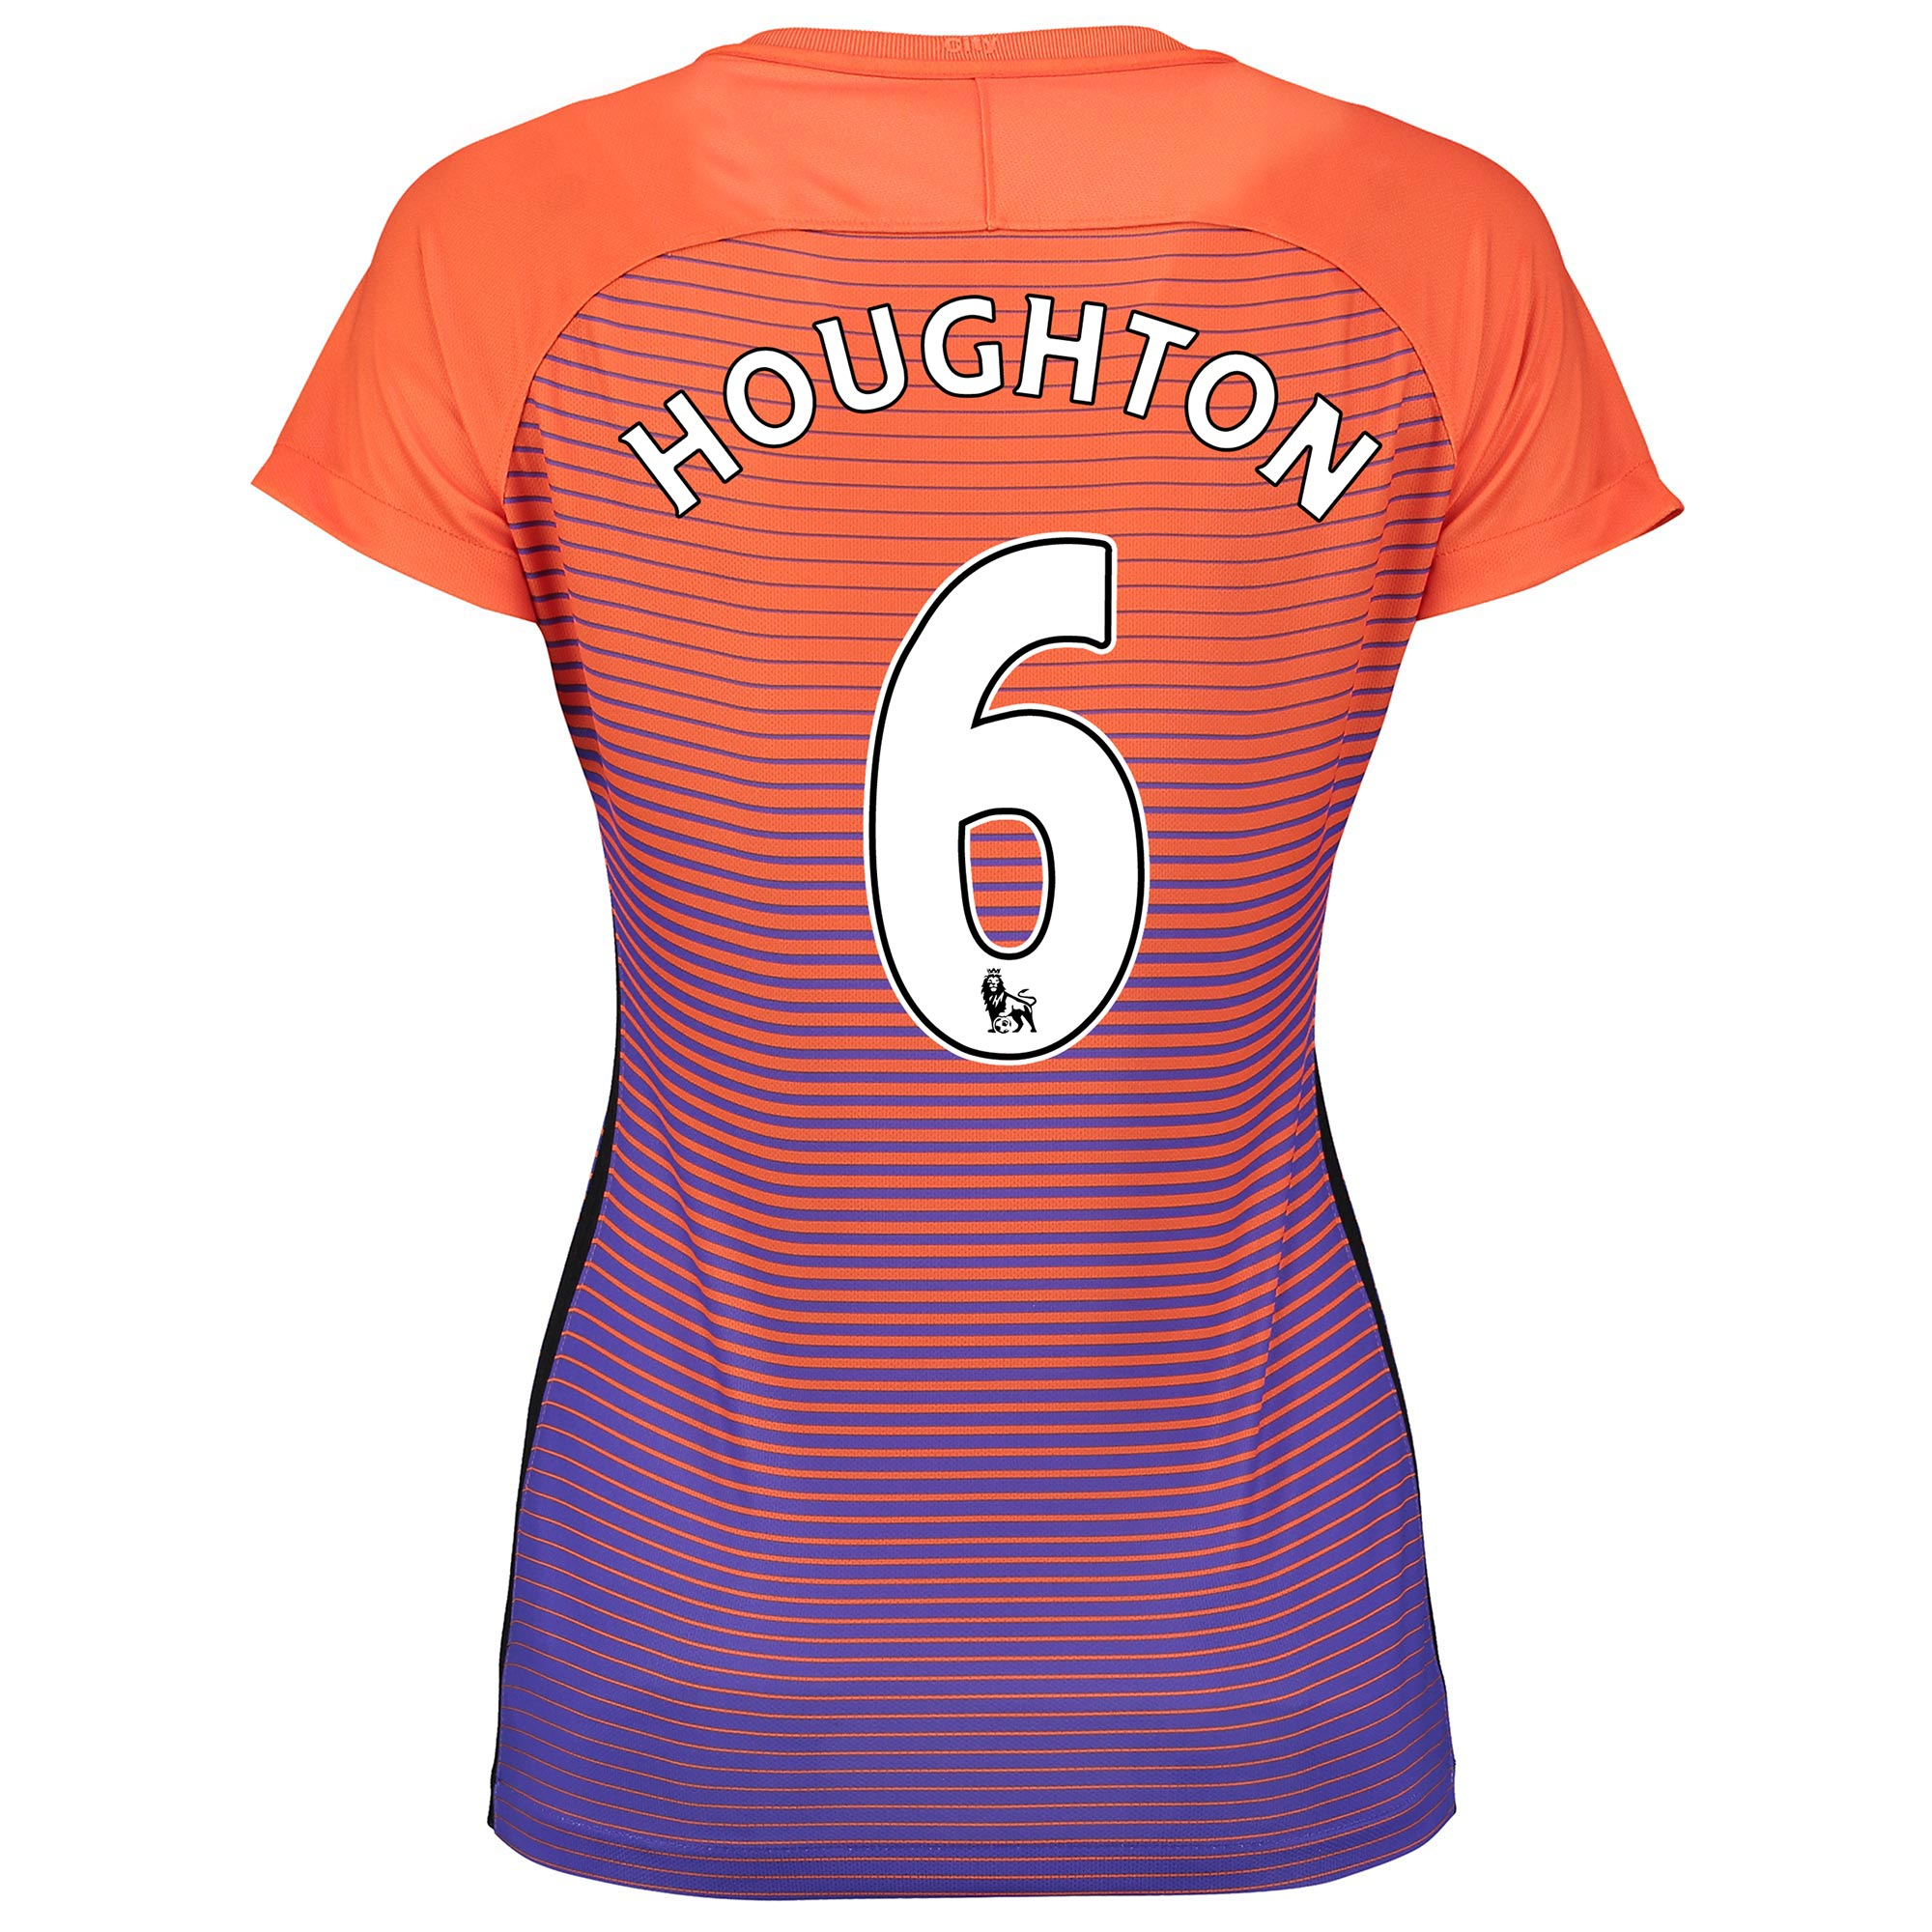 Manchester City Third Stadium Shirt 2016-17 - Womens with Houghton 6 p